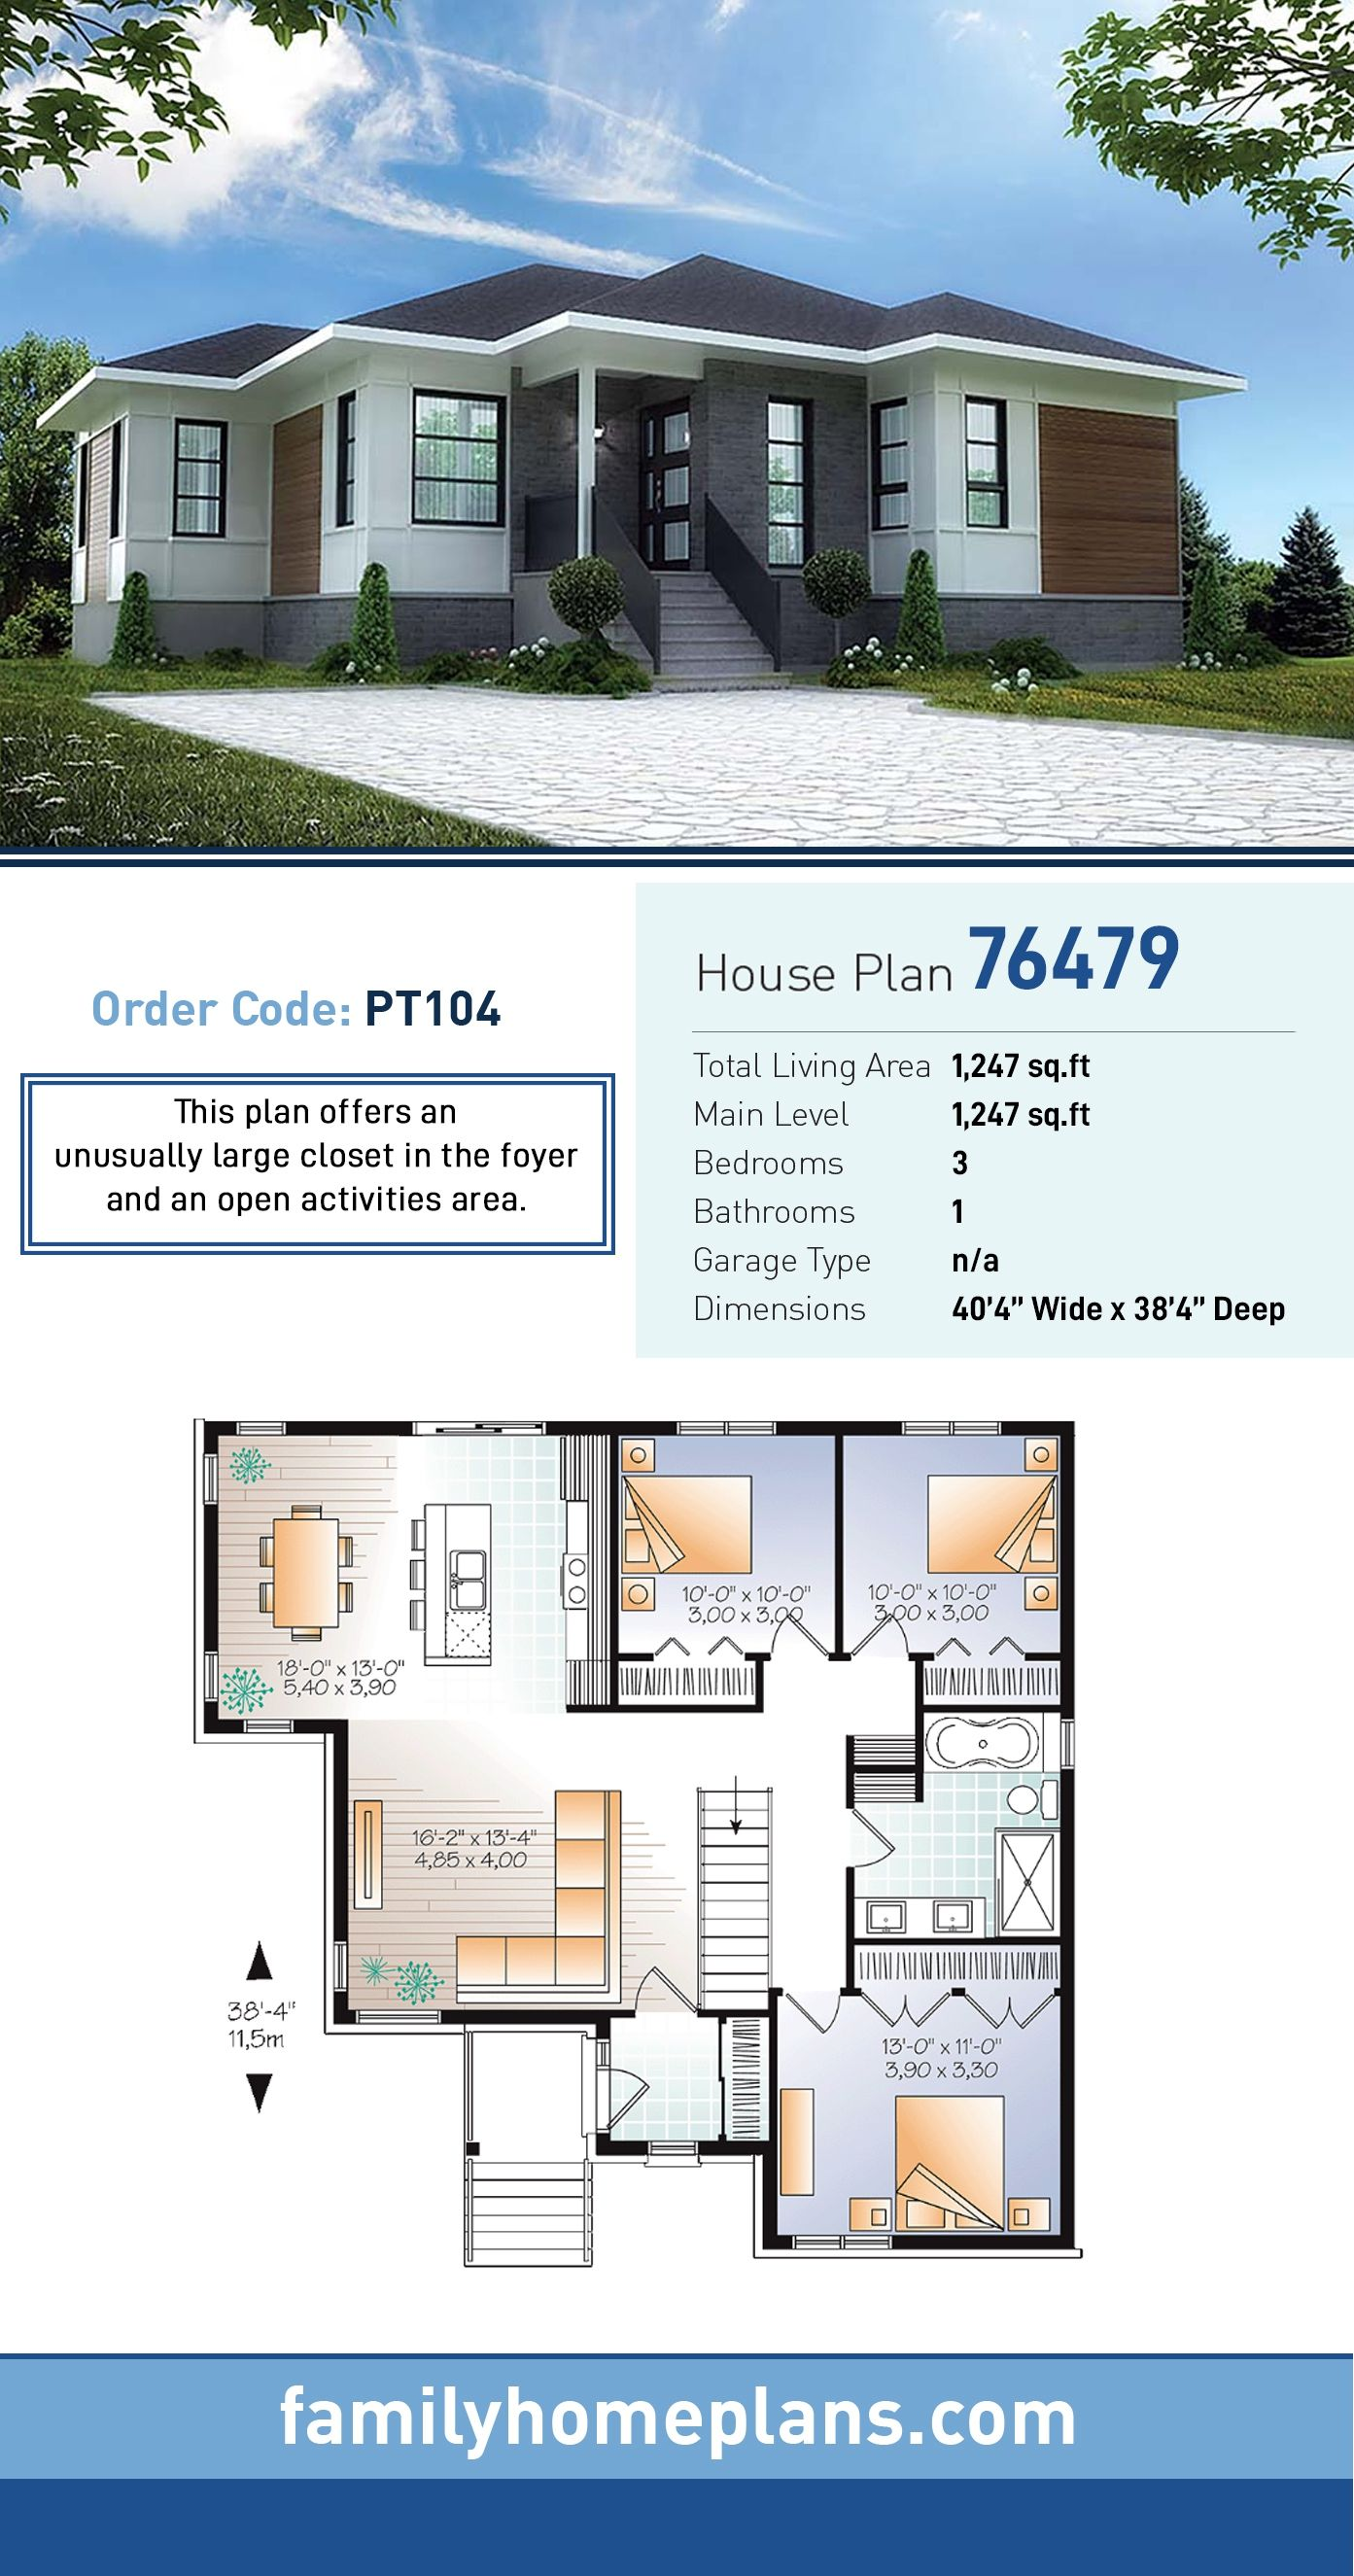 Ranch Style House Plan 76479 With 3 Bed 1 Bath In 2020 House Plan Gallery Beautiful House Plans Ranch Style House Plans